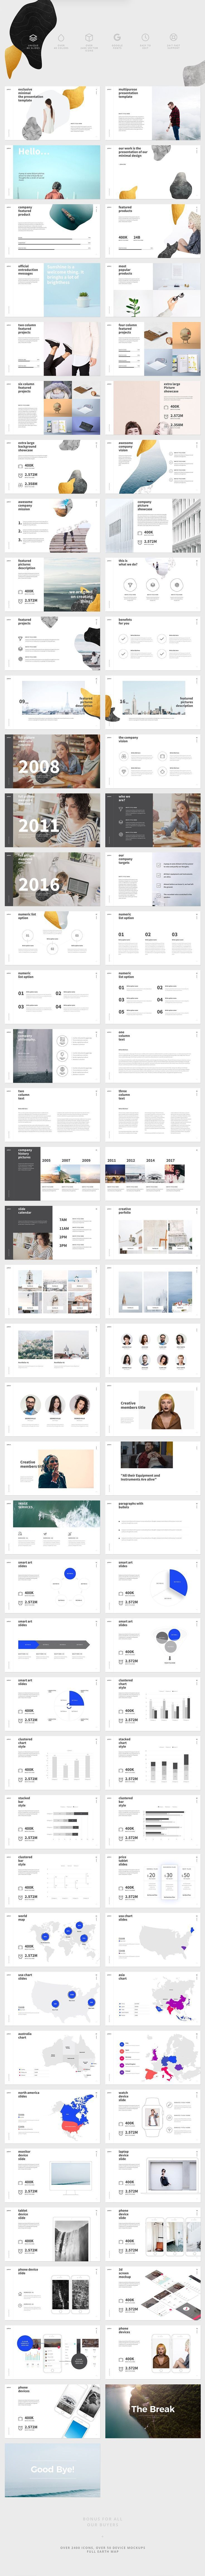 582 best powerpoint templates images on pinterest business pattern powerpoint template creative modern clean minimalist trendy professional marketing toneelgroepblik Choice Image